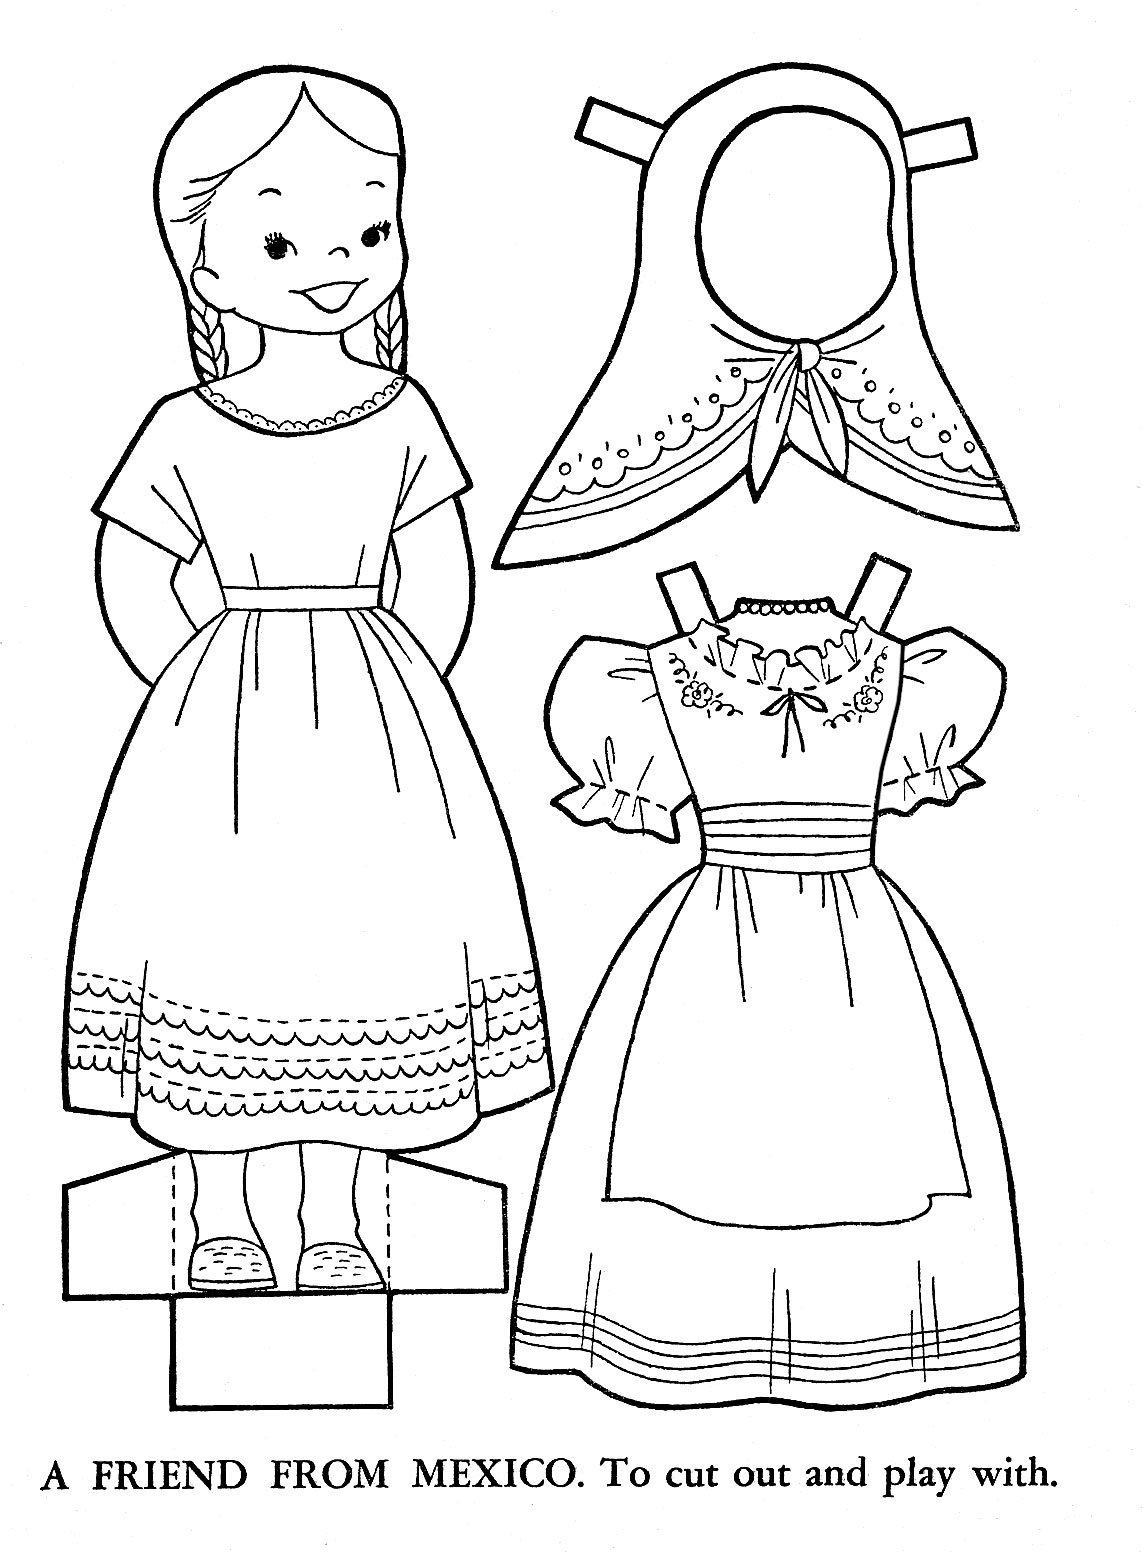 coloring pages mexico mexican culture drawing at getdrawings free download mexico pages coloring